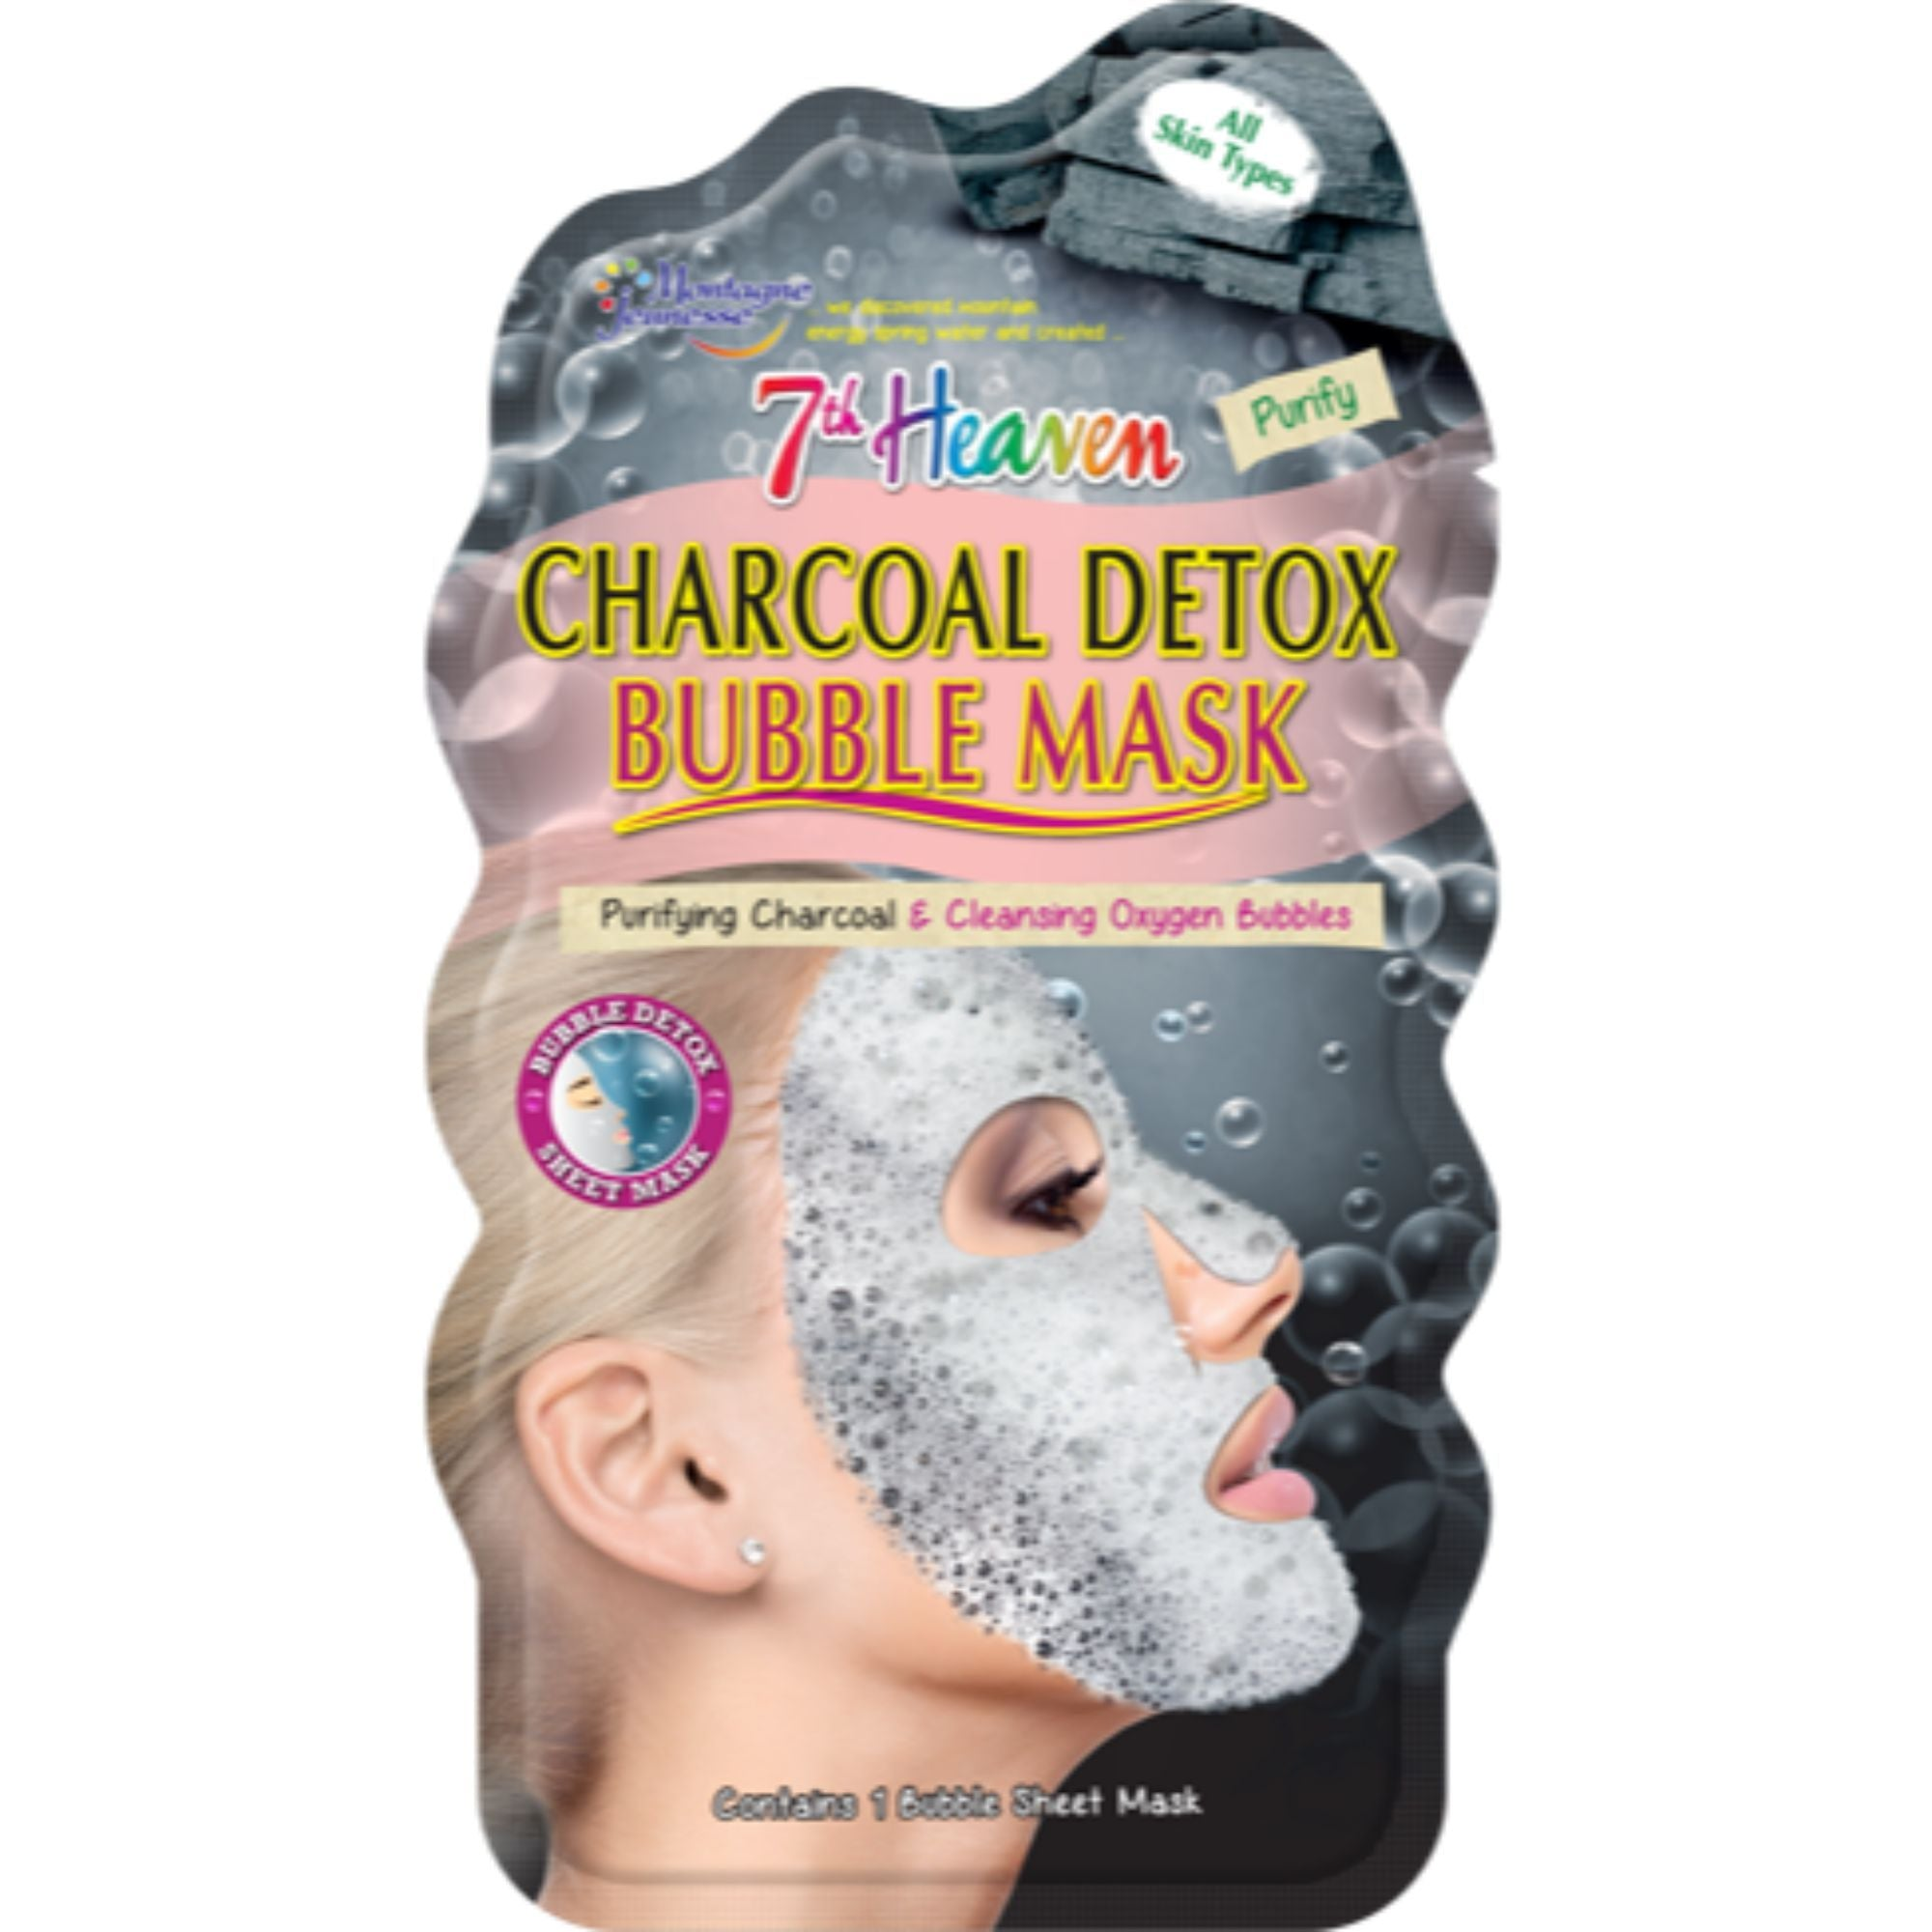 Charcoal Detox Bubble Mask